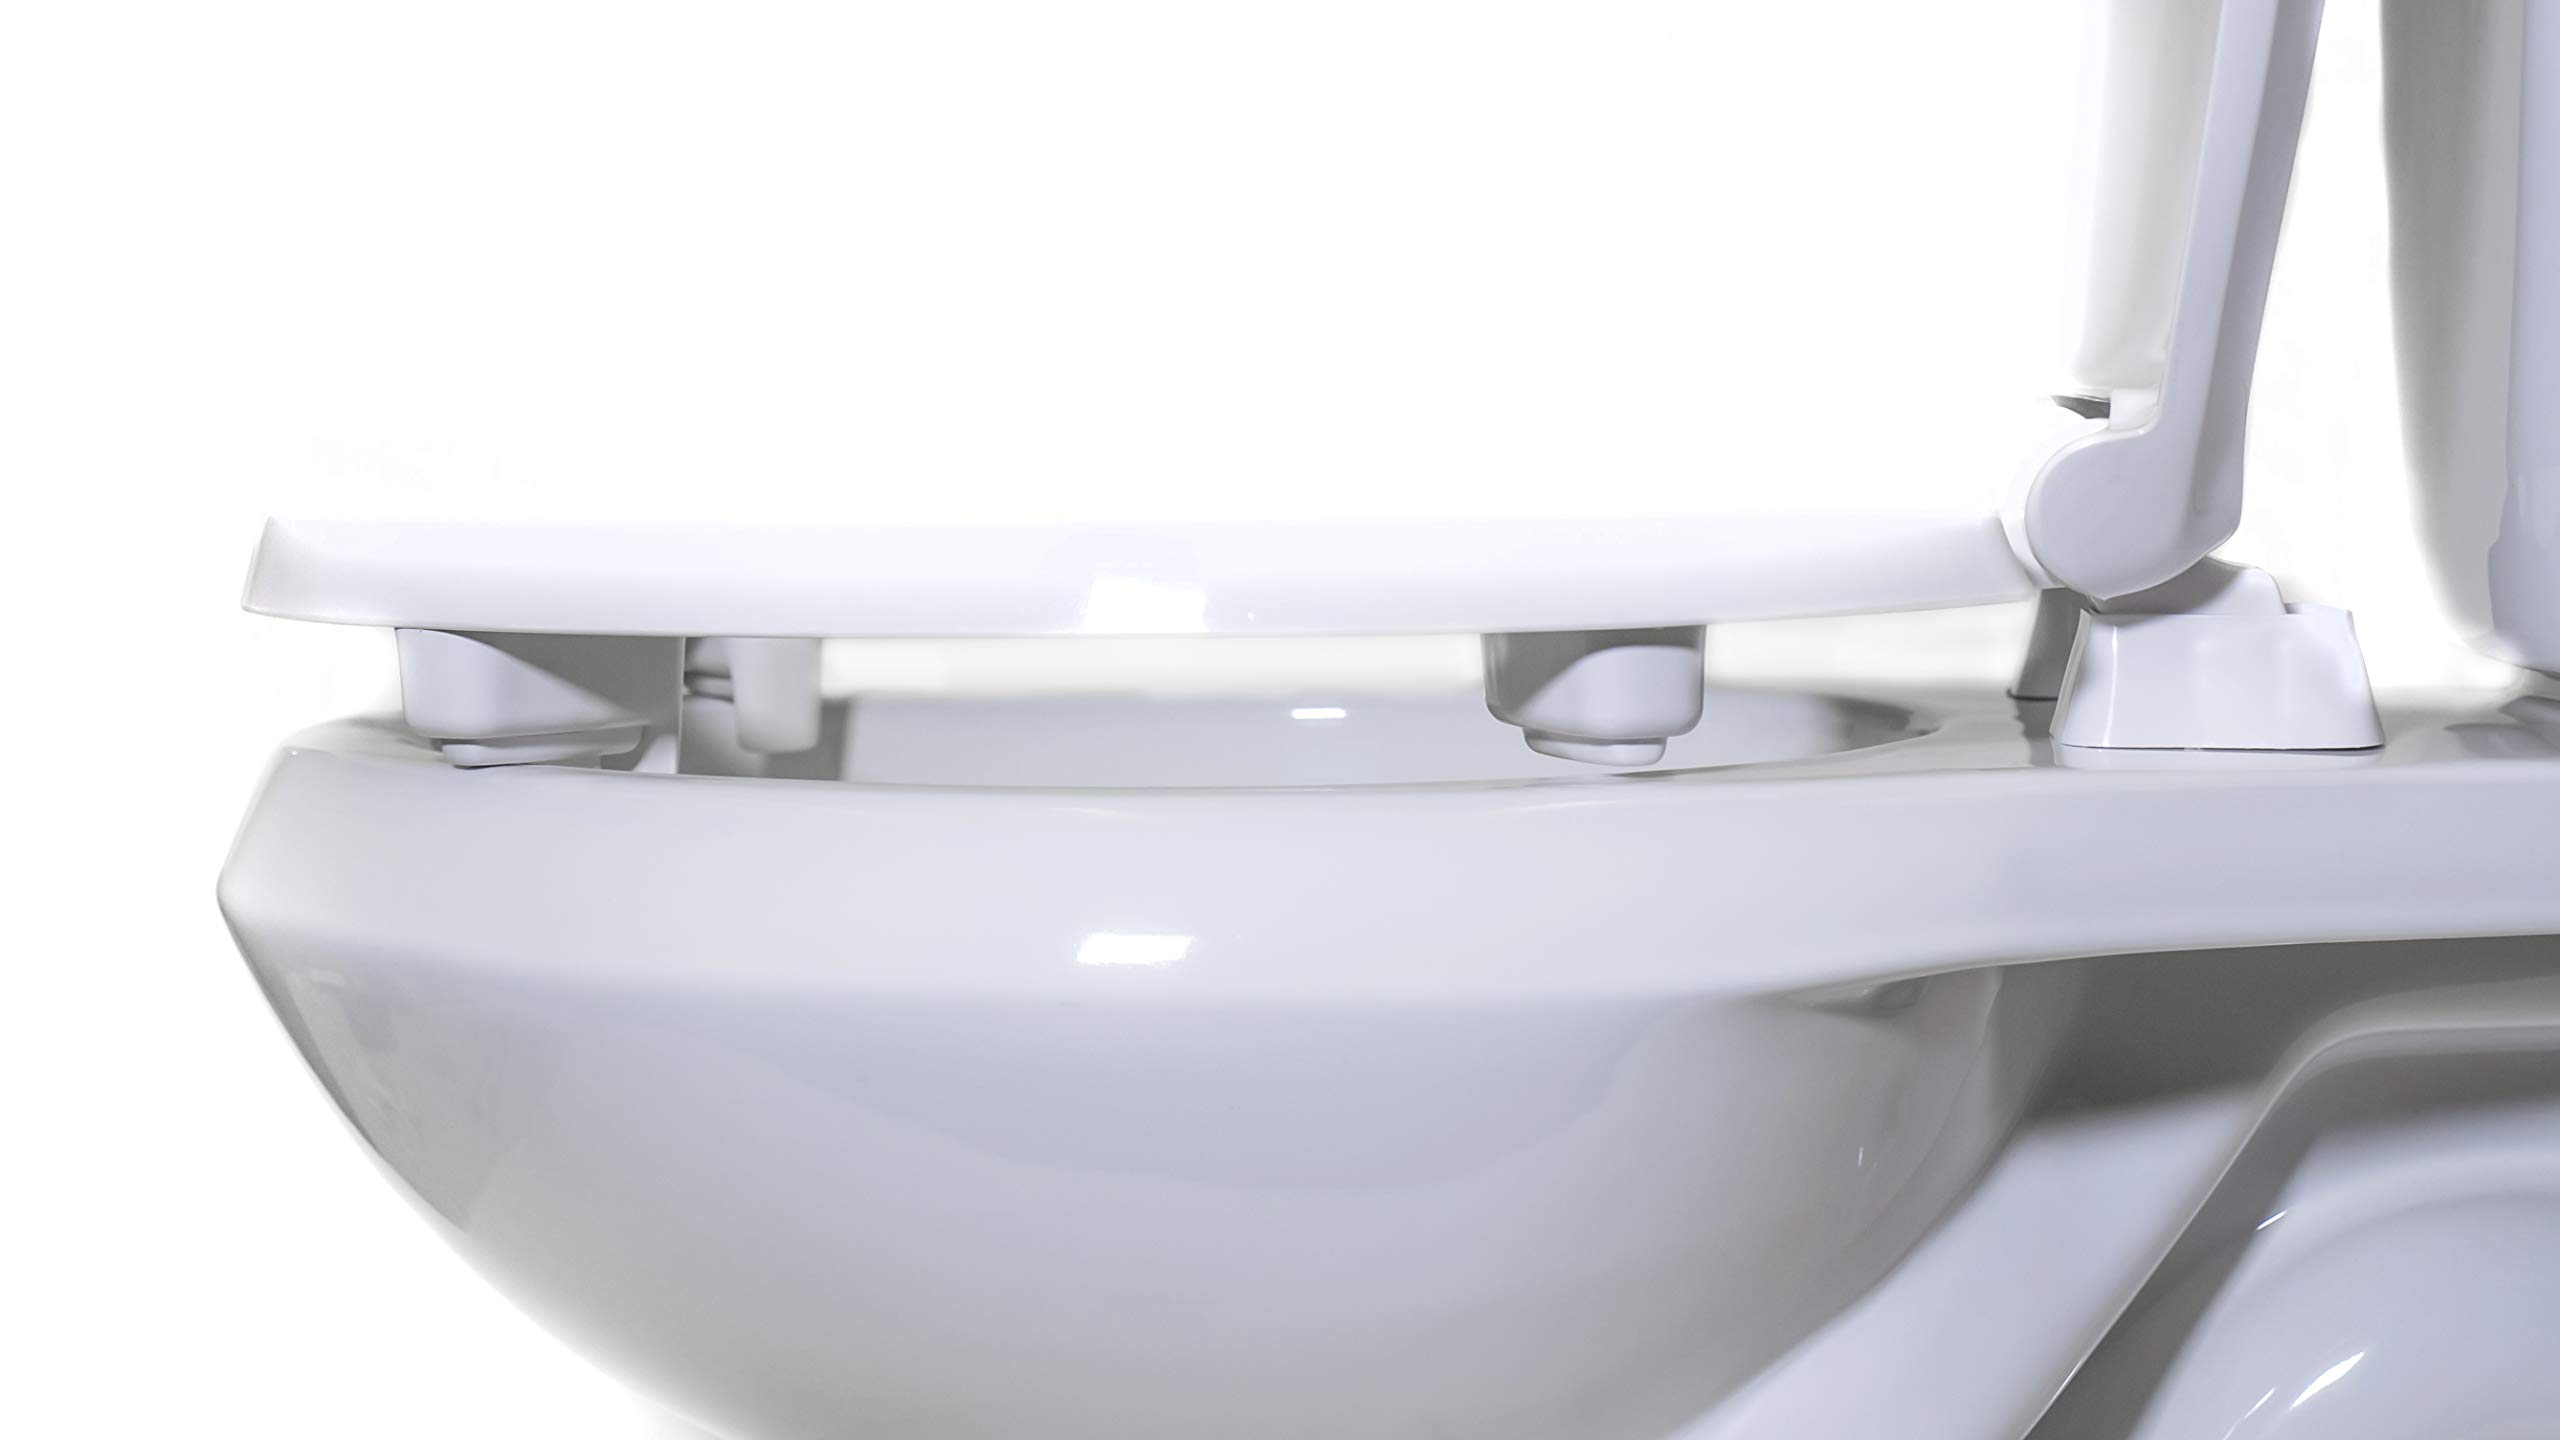 Centoco HL440STS-001 Round 2'' Lift, Raised Plastic Toilet Seat, Closed Front with Cover, ADA Compliant Handicap Medical Assistance Seat, White by Centoco (Image #4)